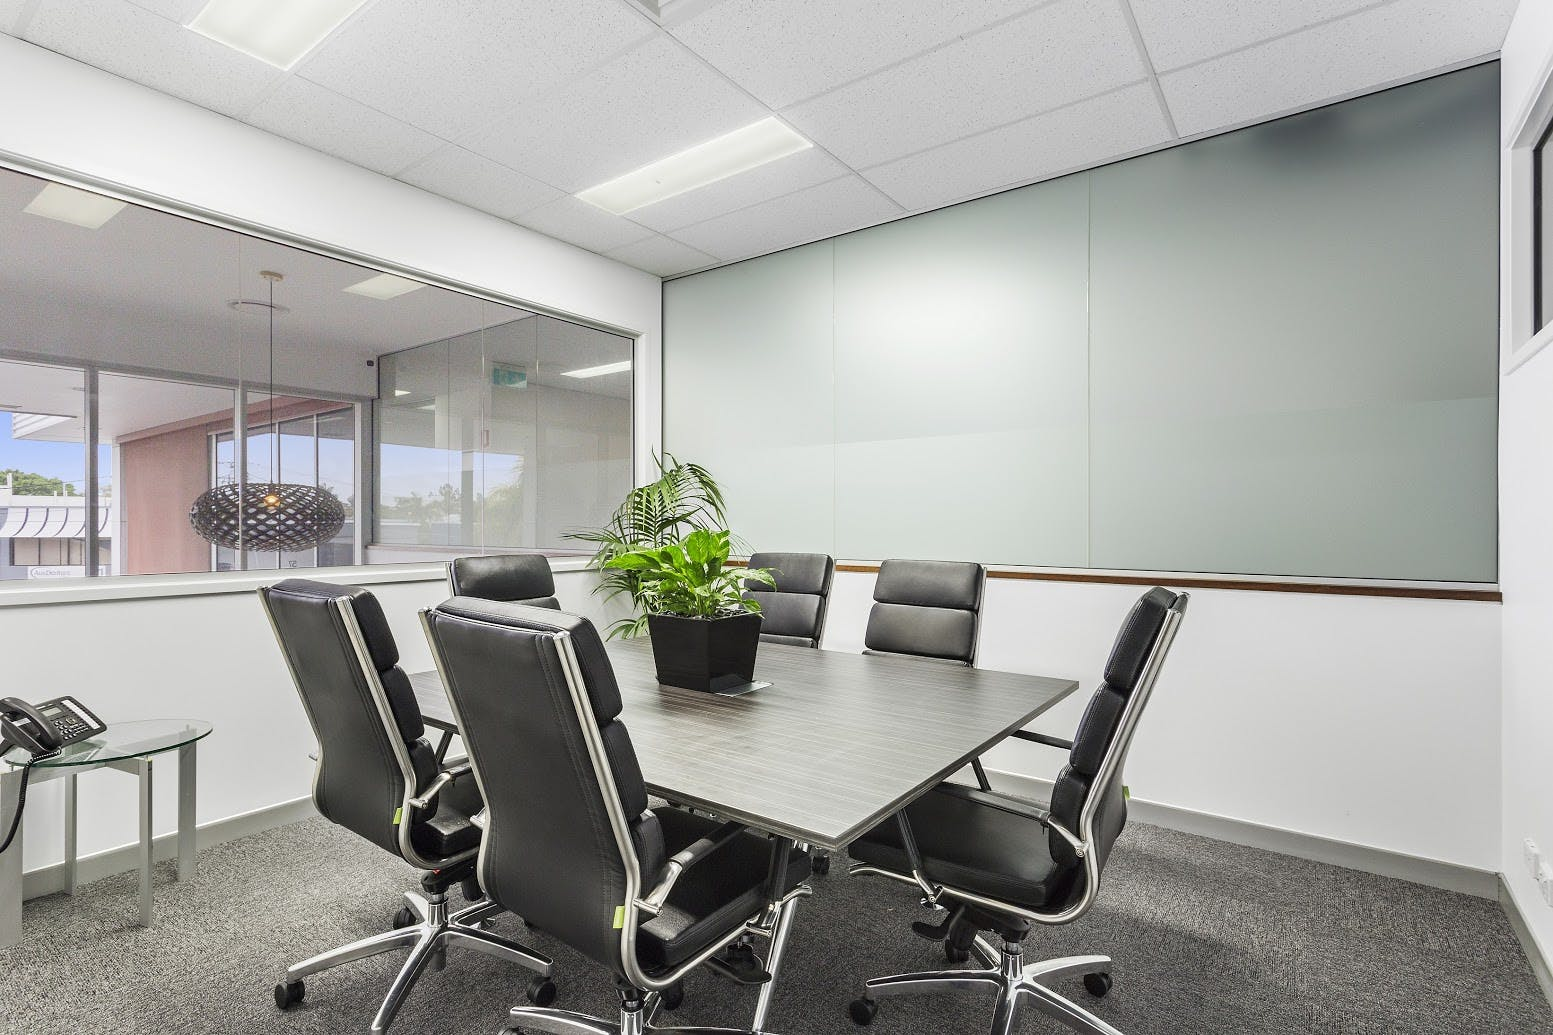 Laidlaw Boardroom for 8 people, meeting room at Studio42, image 1